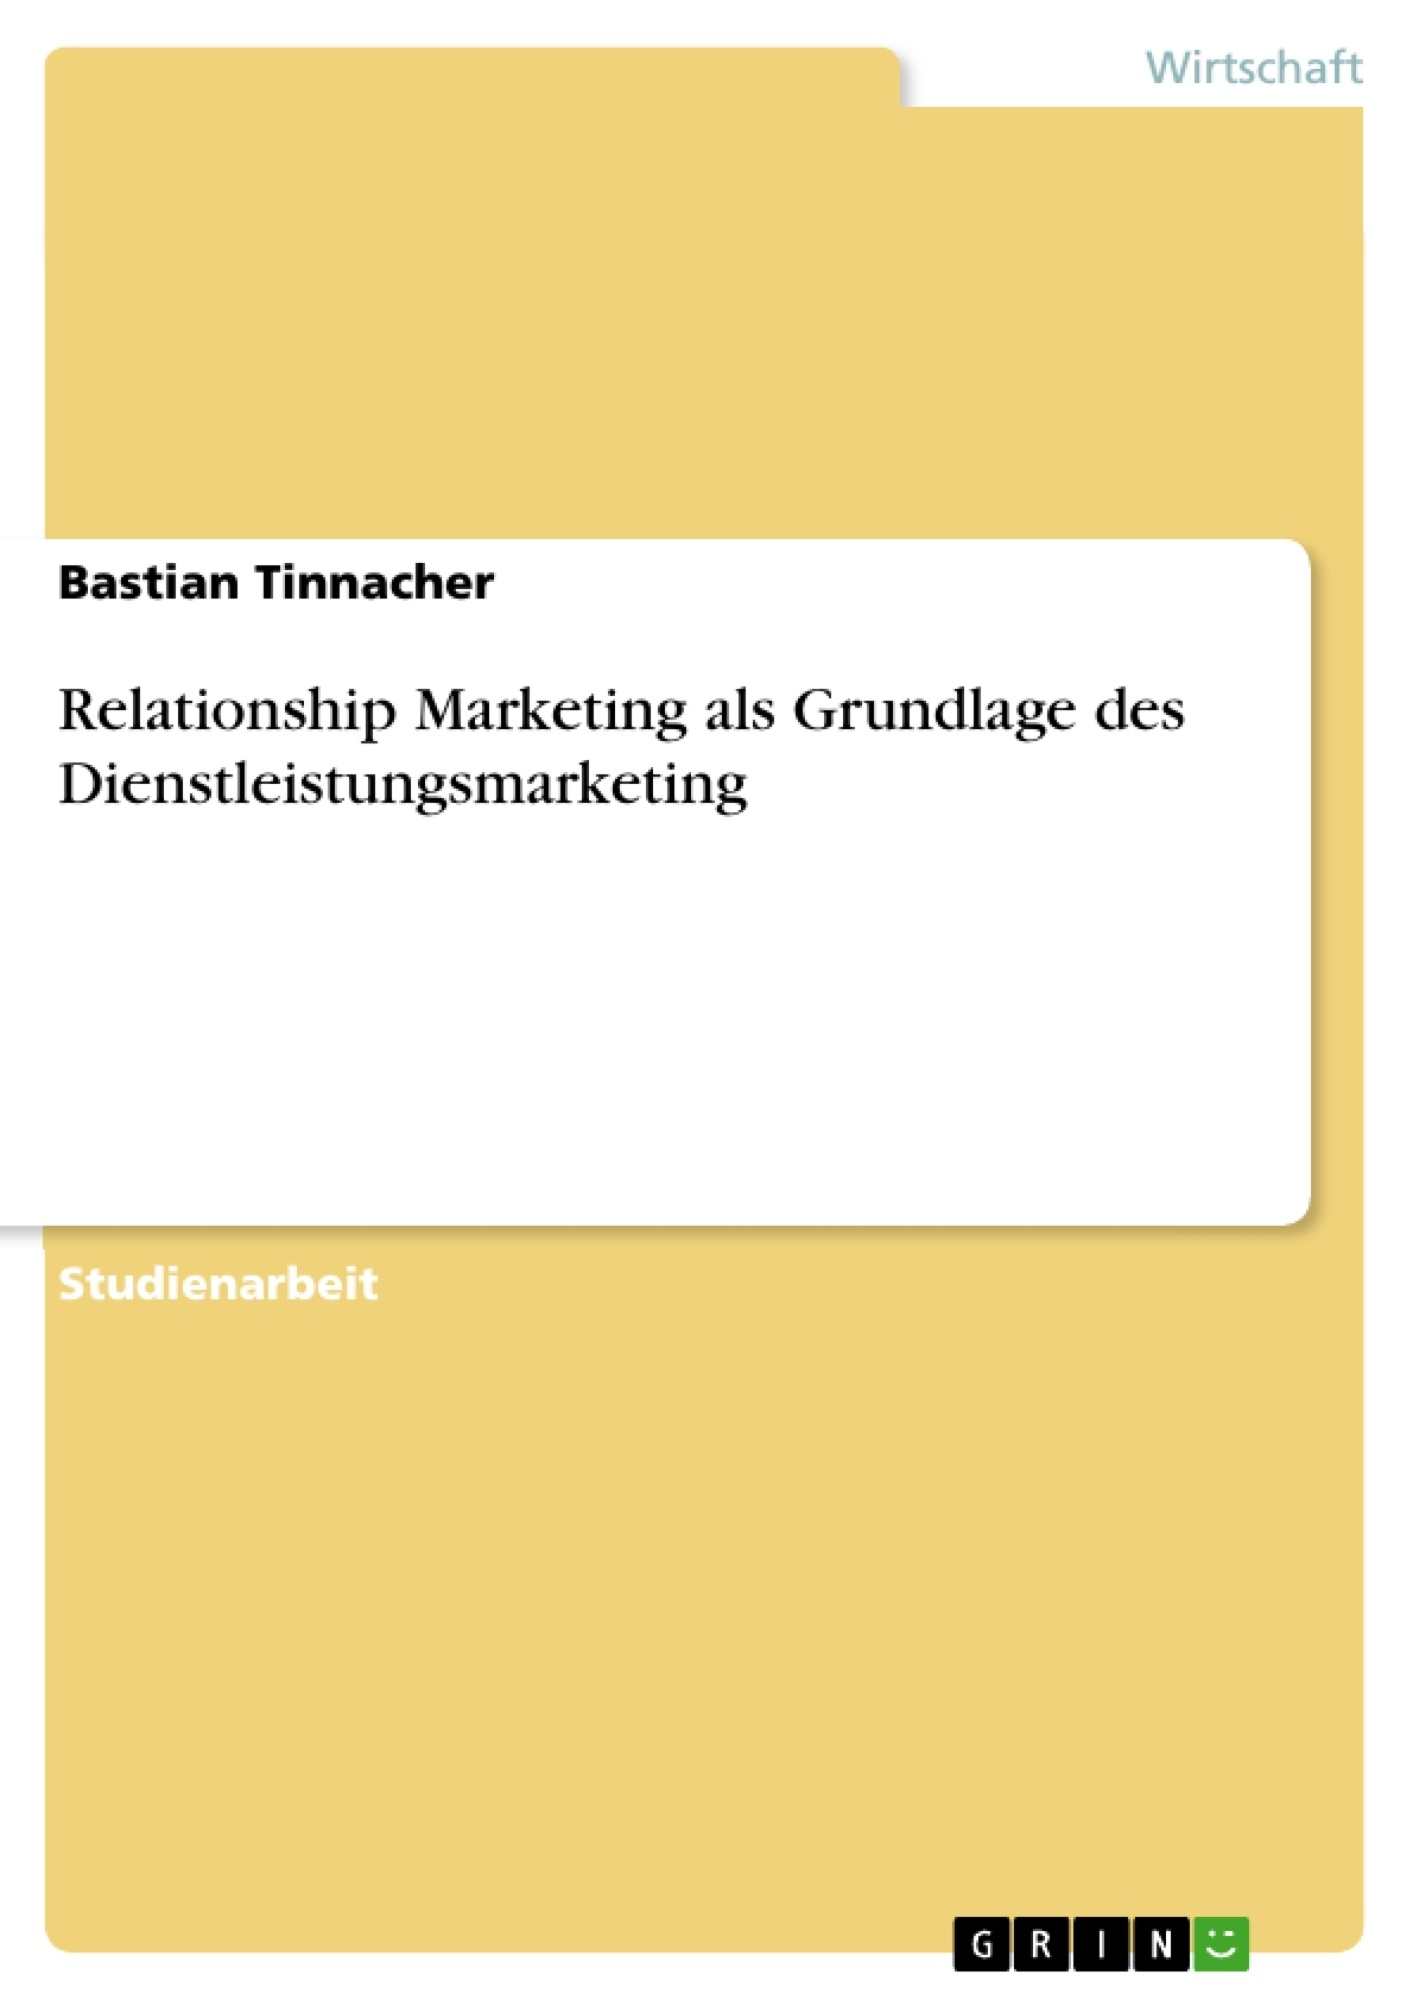 Titel: Relationship Marketing als Grundlage des Dienstleistungsmarketing